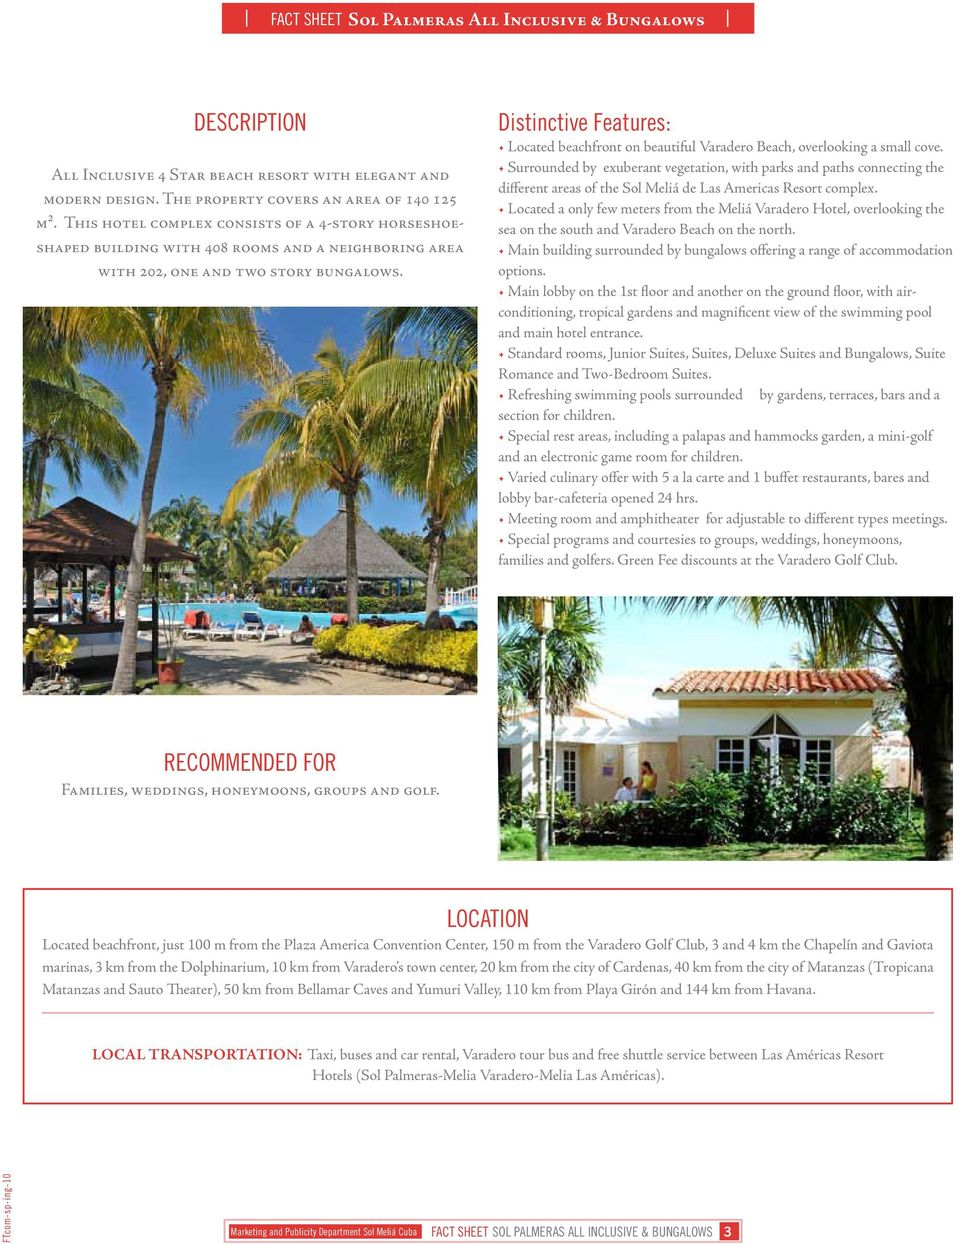 Distinctive Features: Located beachfront on beautiful Varadero Beach, overlooking a small cove.